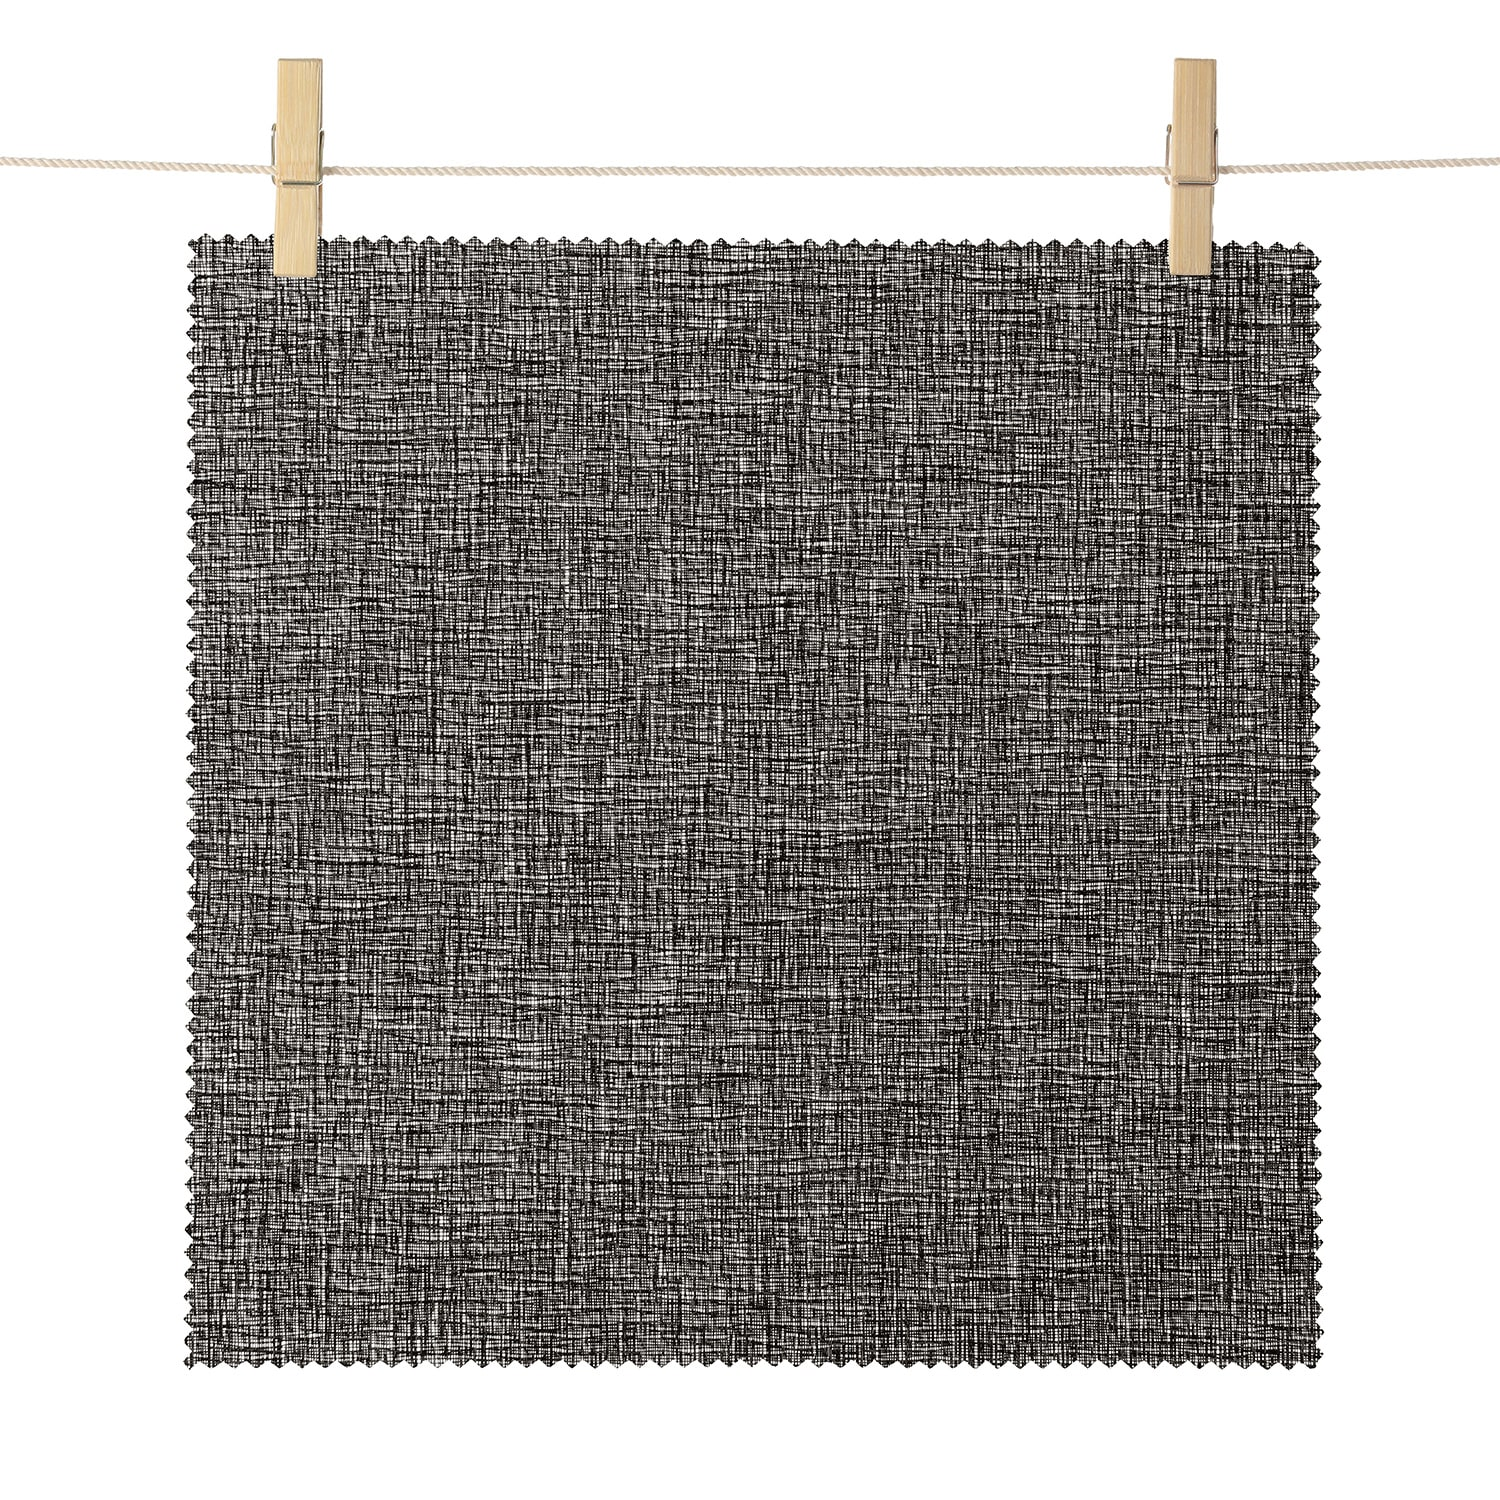 Pasadena Charcoal LenoWeave Textured Semi Sheer Roller Shade Swatch